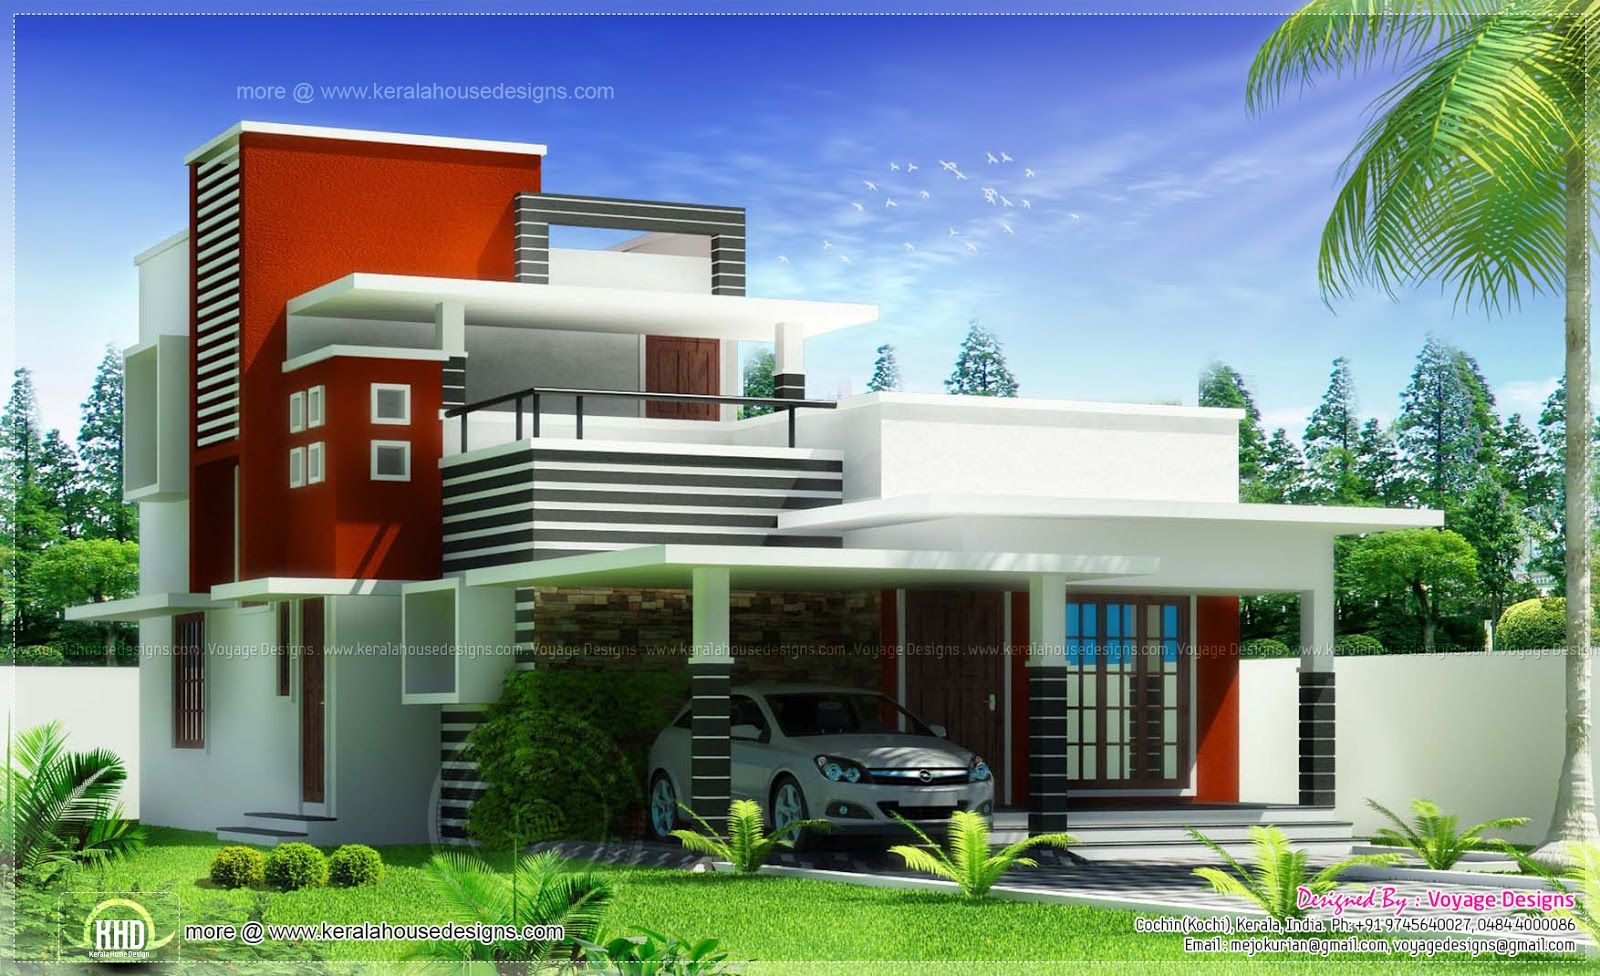 Kerala house designs architecture pinterest kerala for Www kerala house designs com